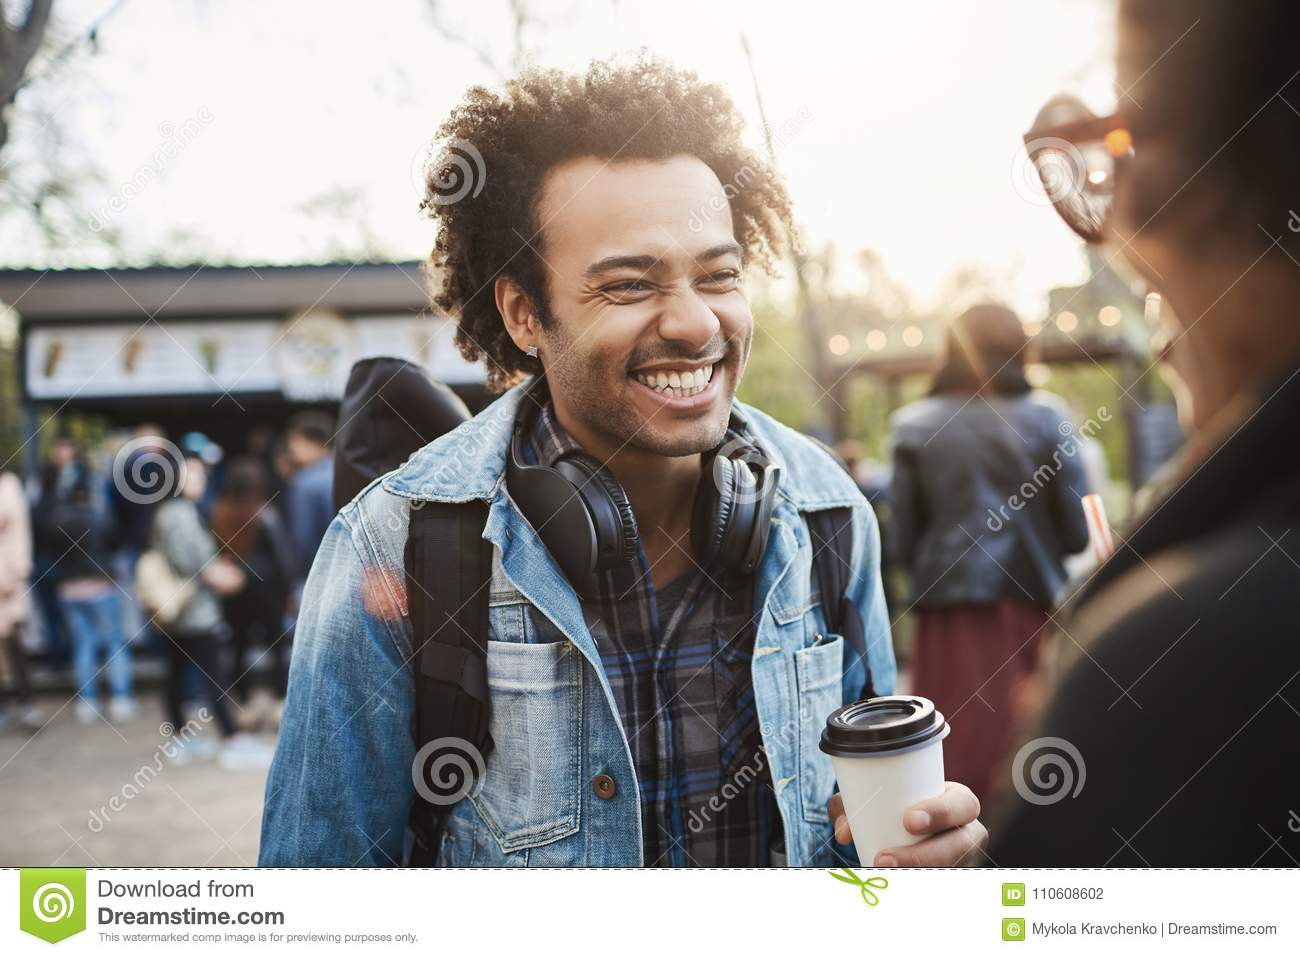 Charming Happy Boyfriend With Afro Hairstyle Smiling And